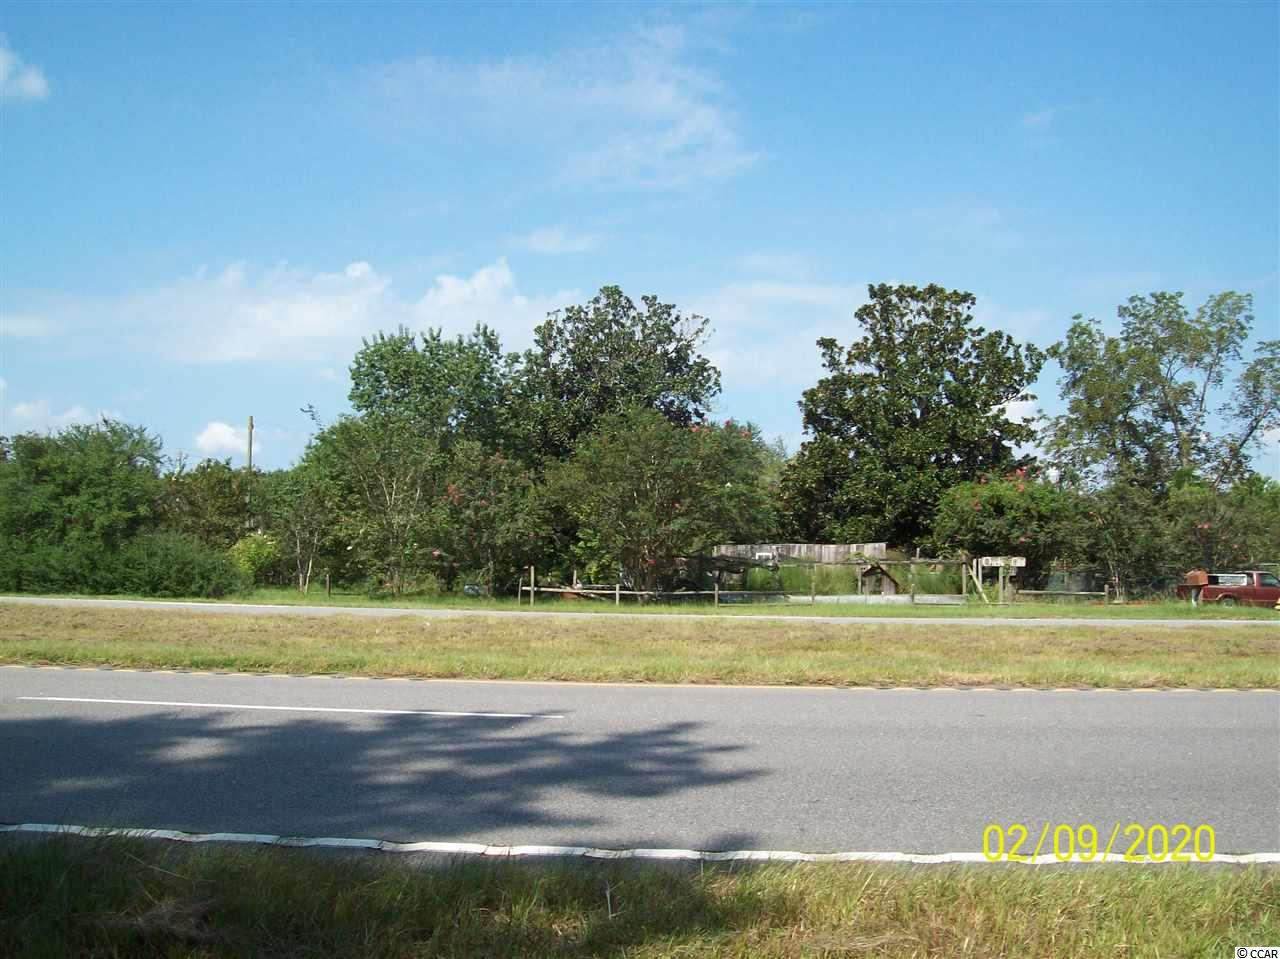 VERY LARGE 5BR BRICK HOUSE ON 11 ACRES, PLUS A 4BR HOUSE, PLUS A DUPLEX HOUSE, PLUS A MOBILE HOME, ASSORTMENT OF STORAGE BUILDINGS, SHEDS, BEAUTIFUL LAND, SEVERAL HUNDRED FT. ON HWY. 17, NICE FISH POND, HAS HOLE AVE., POWELL RD., AND HWY. 17 FRONTAGE, CAN SUBDIVIDE, GREAT PRICE!!!!!